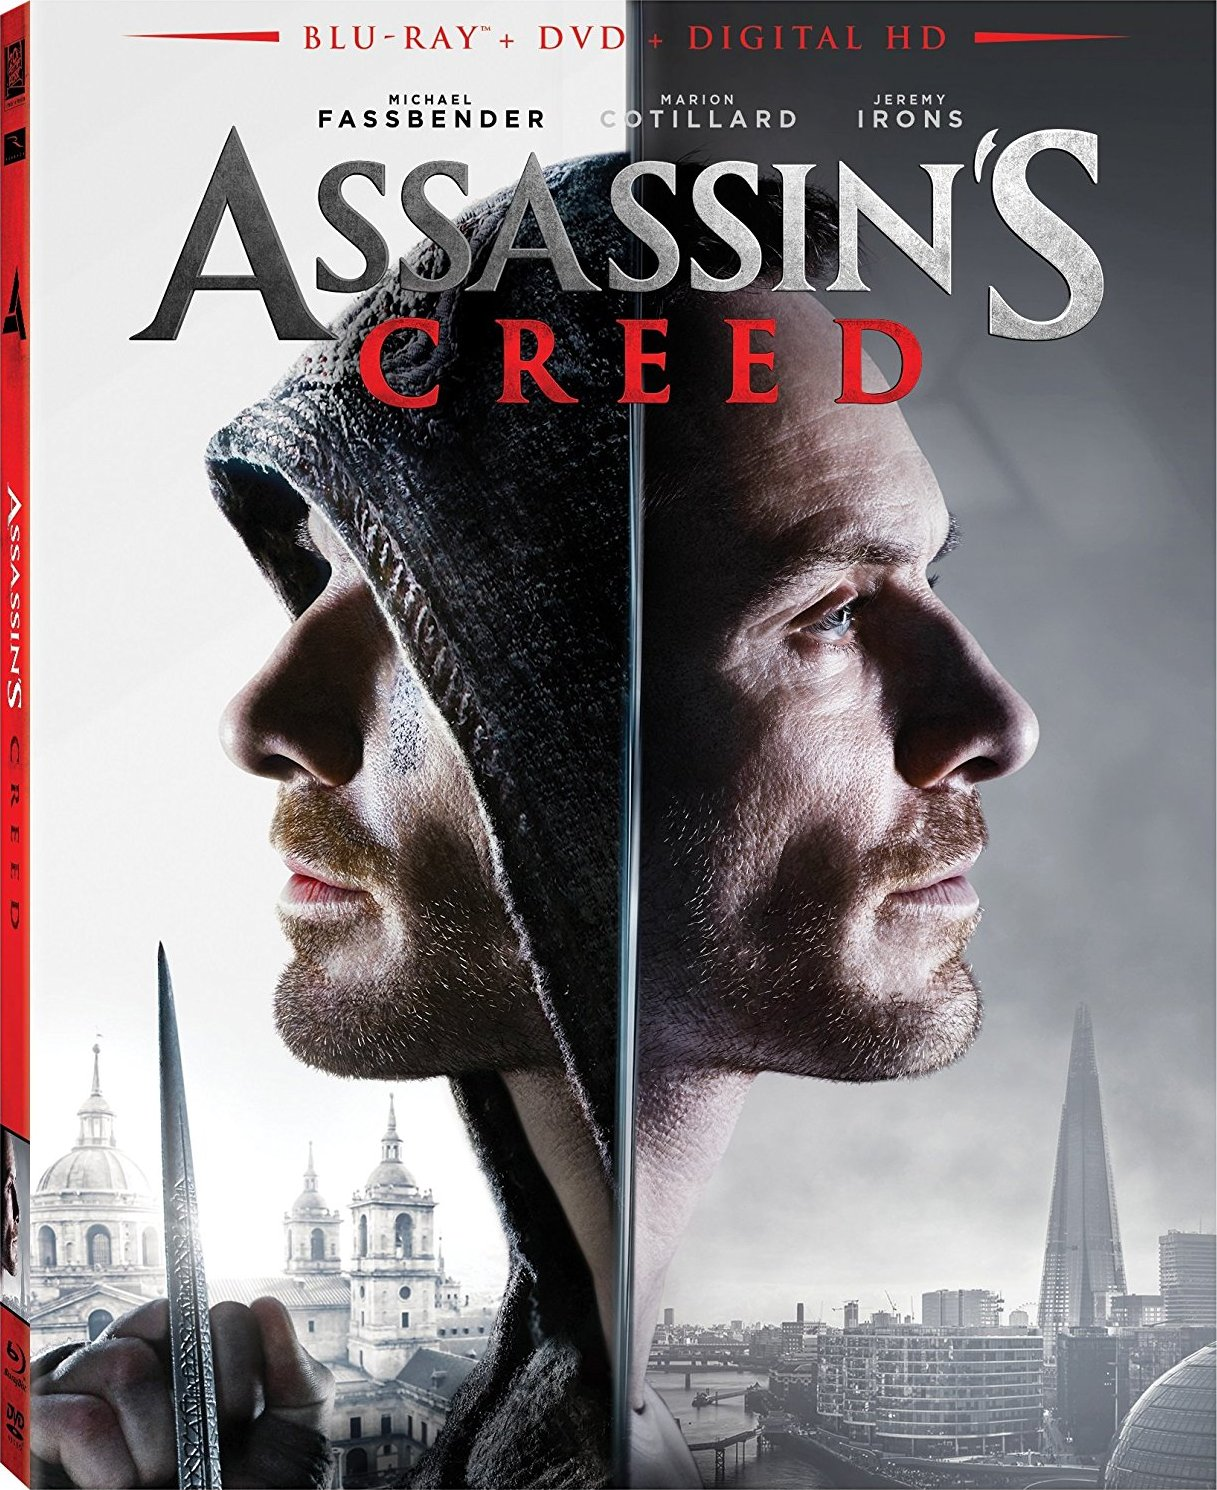 Assassins Creed poster image